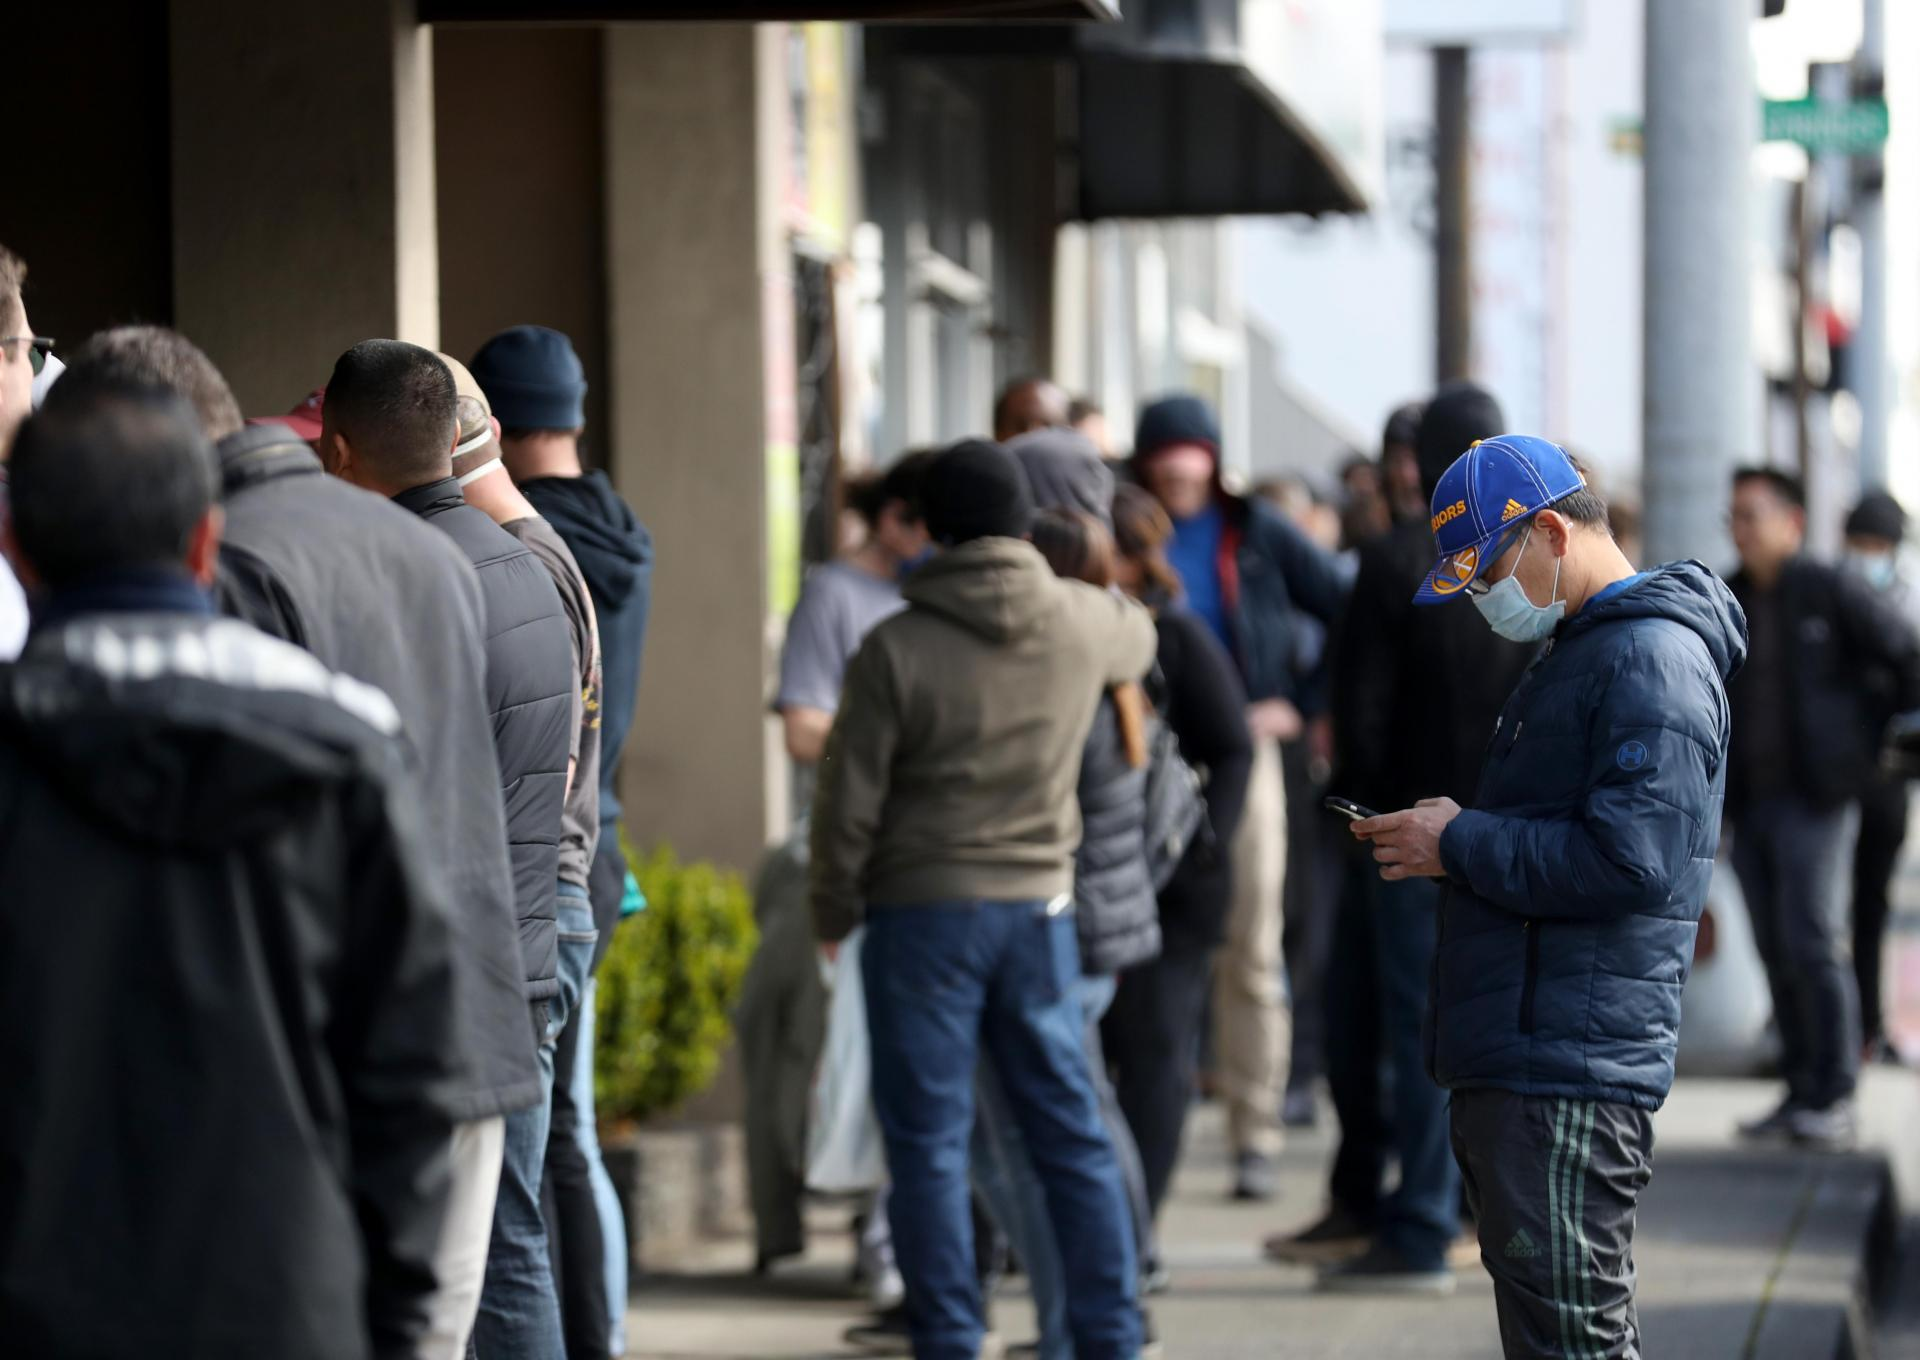 People line up to buy guns in California as the state's 40 million residents go into lockdown. Photo: AFP